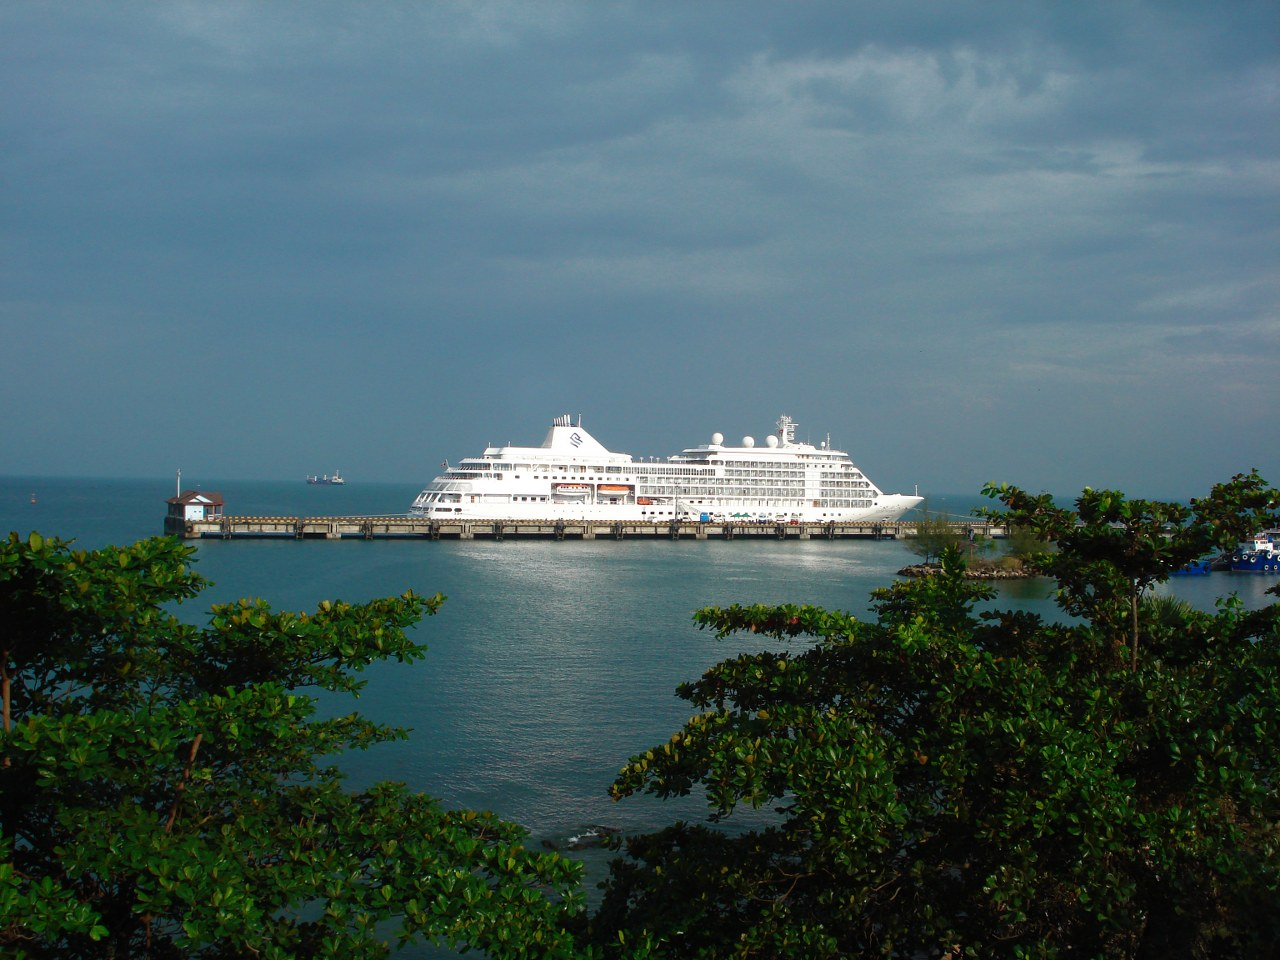 Sihanouk ville Economy Cruise Ship - Angkor Focus Travel